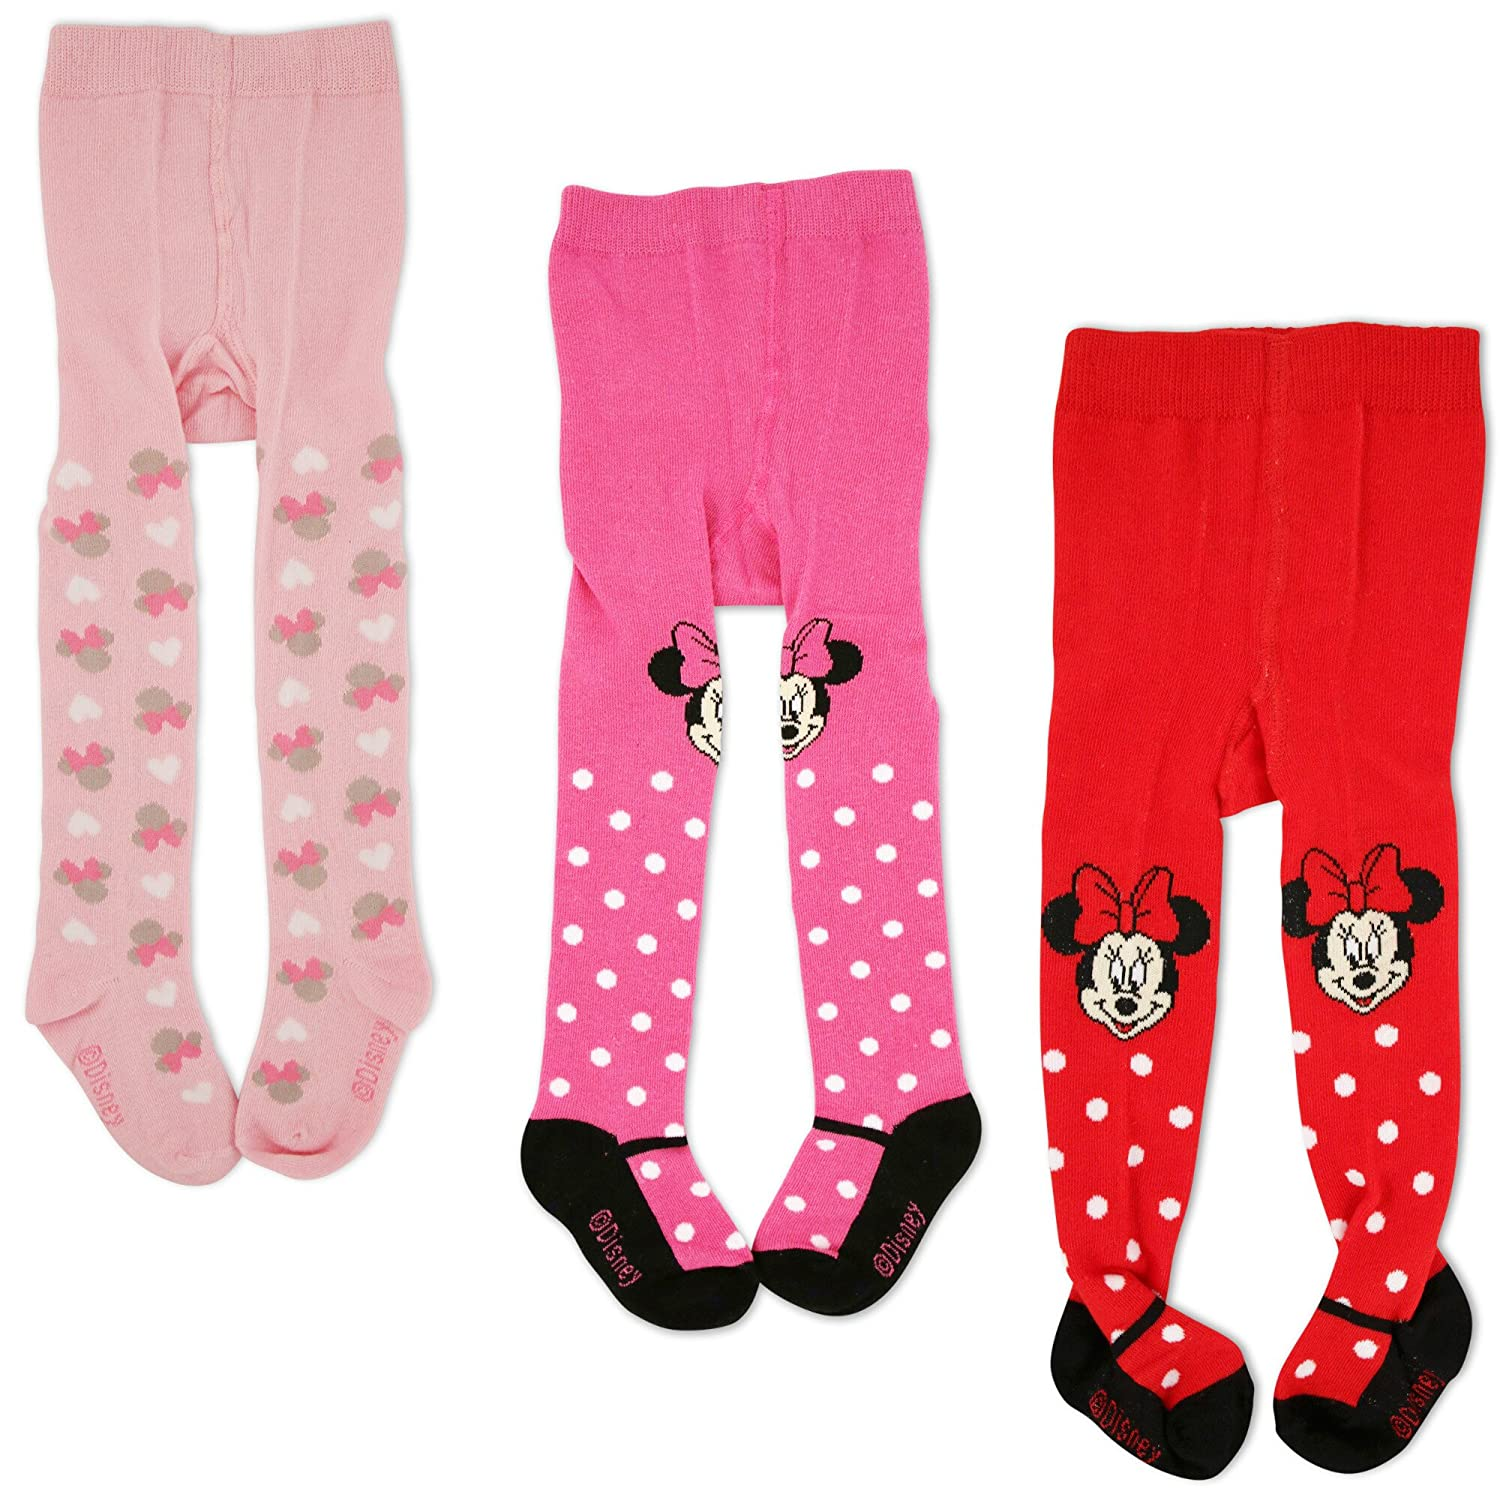 aced5dca3  3 piece variety color pack baby girls tights featuring Disney s Minnie  Mouse. Officially licensed Disney Baby Minnie Mouse product.